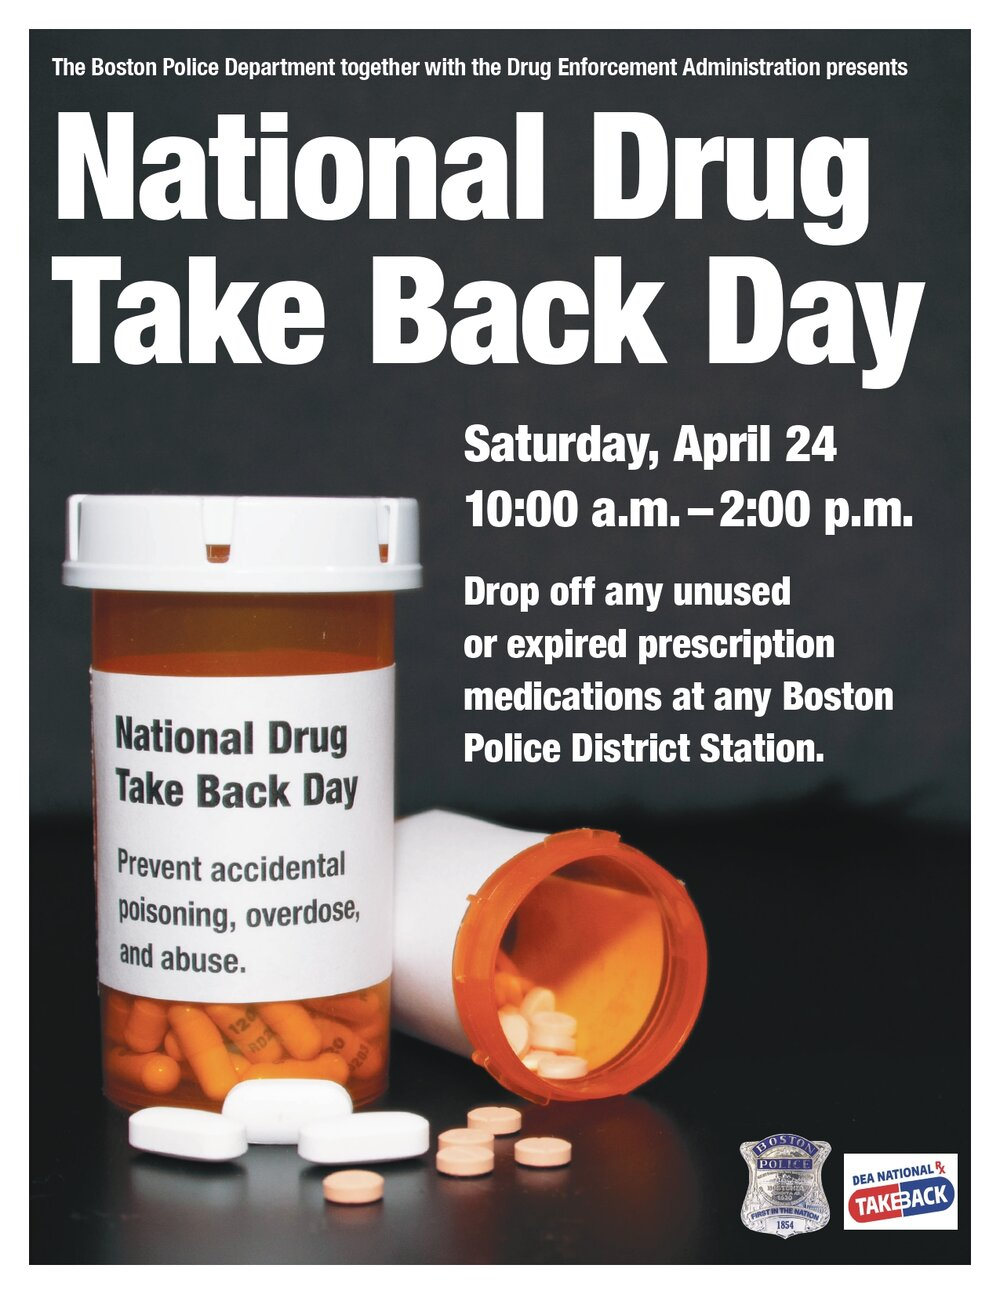 Safely Dispose of Expired Prescription Medications at Your Local District Police Station during National Drug Take Back Day on April 24, 2021, from 10:00 AM to 2:00 PM